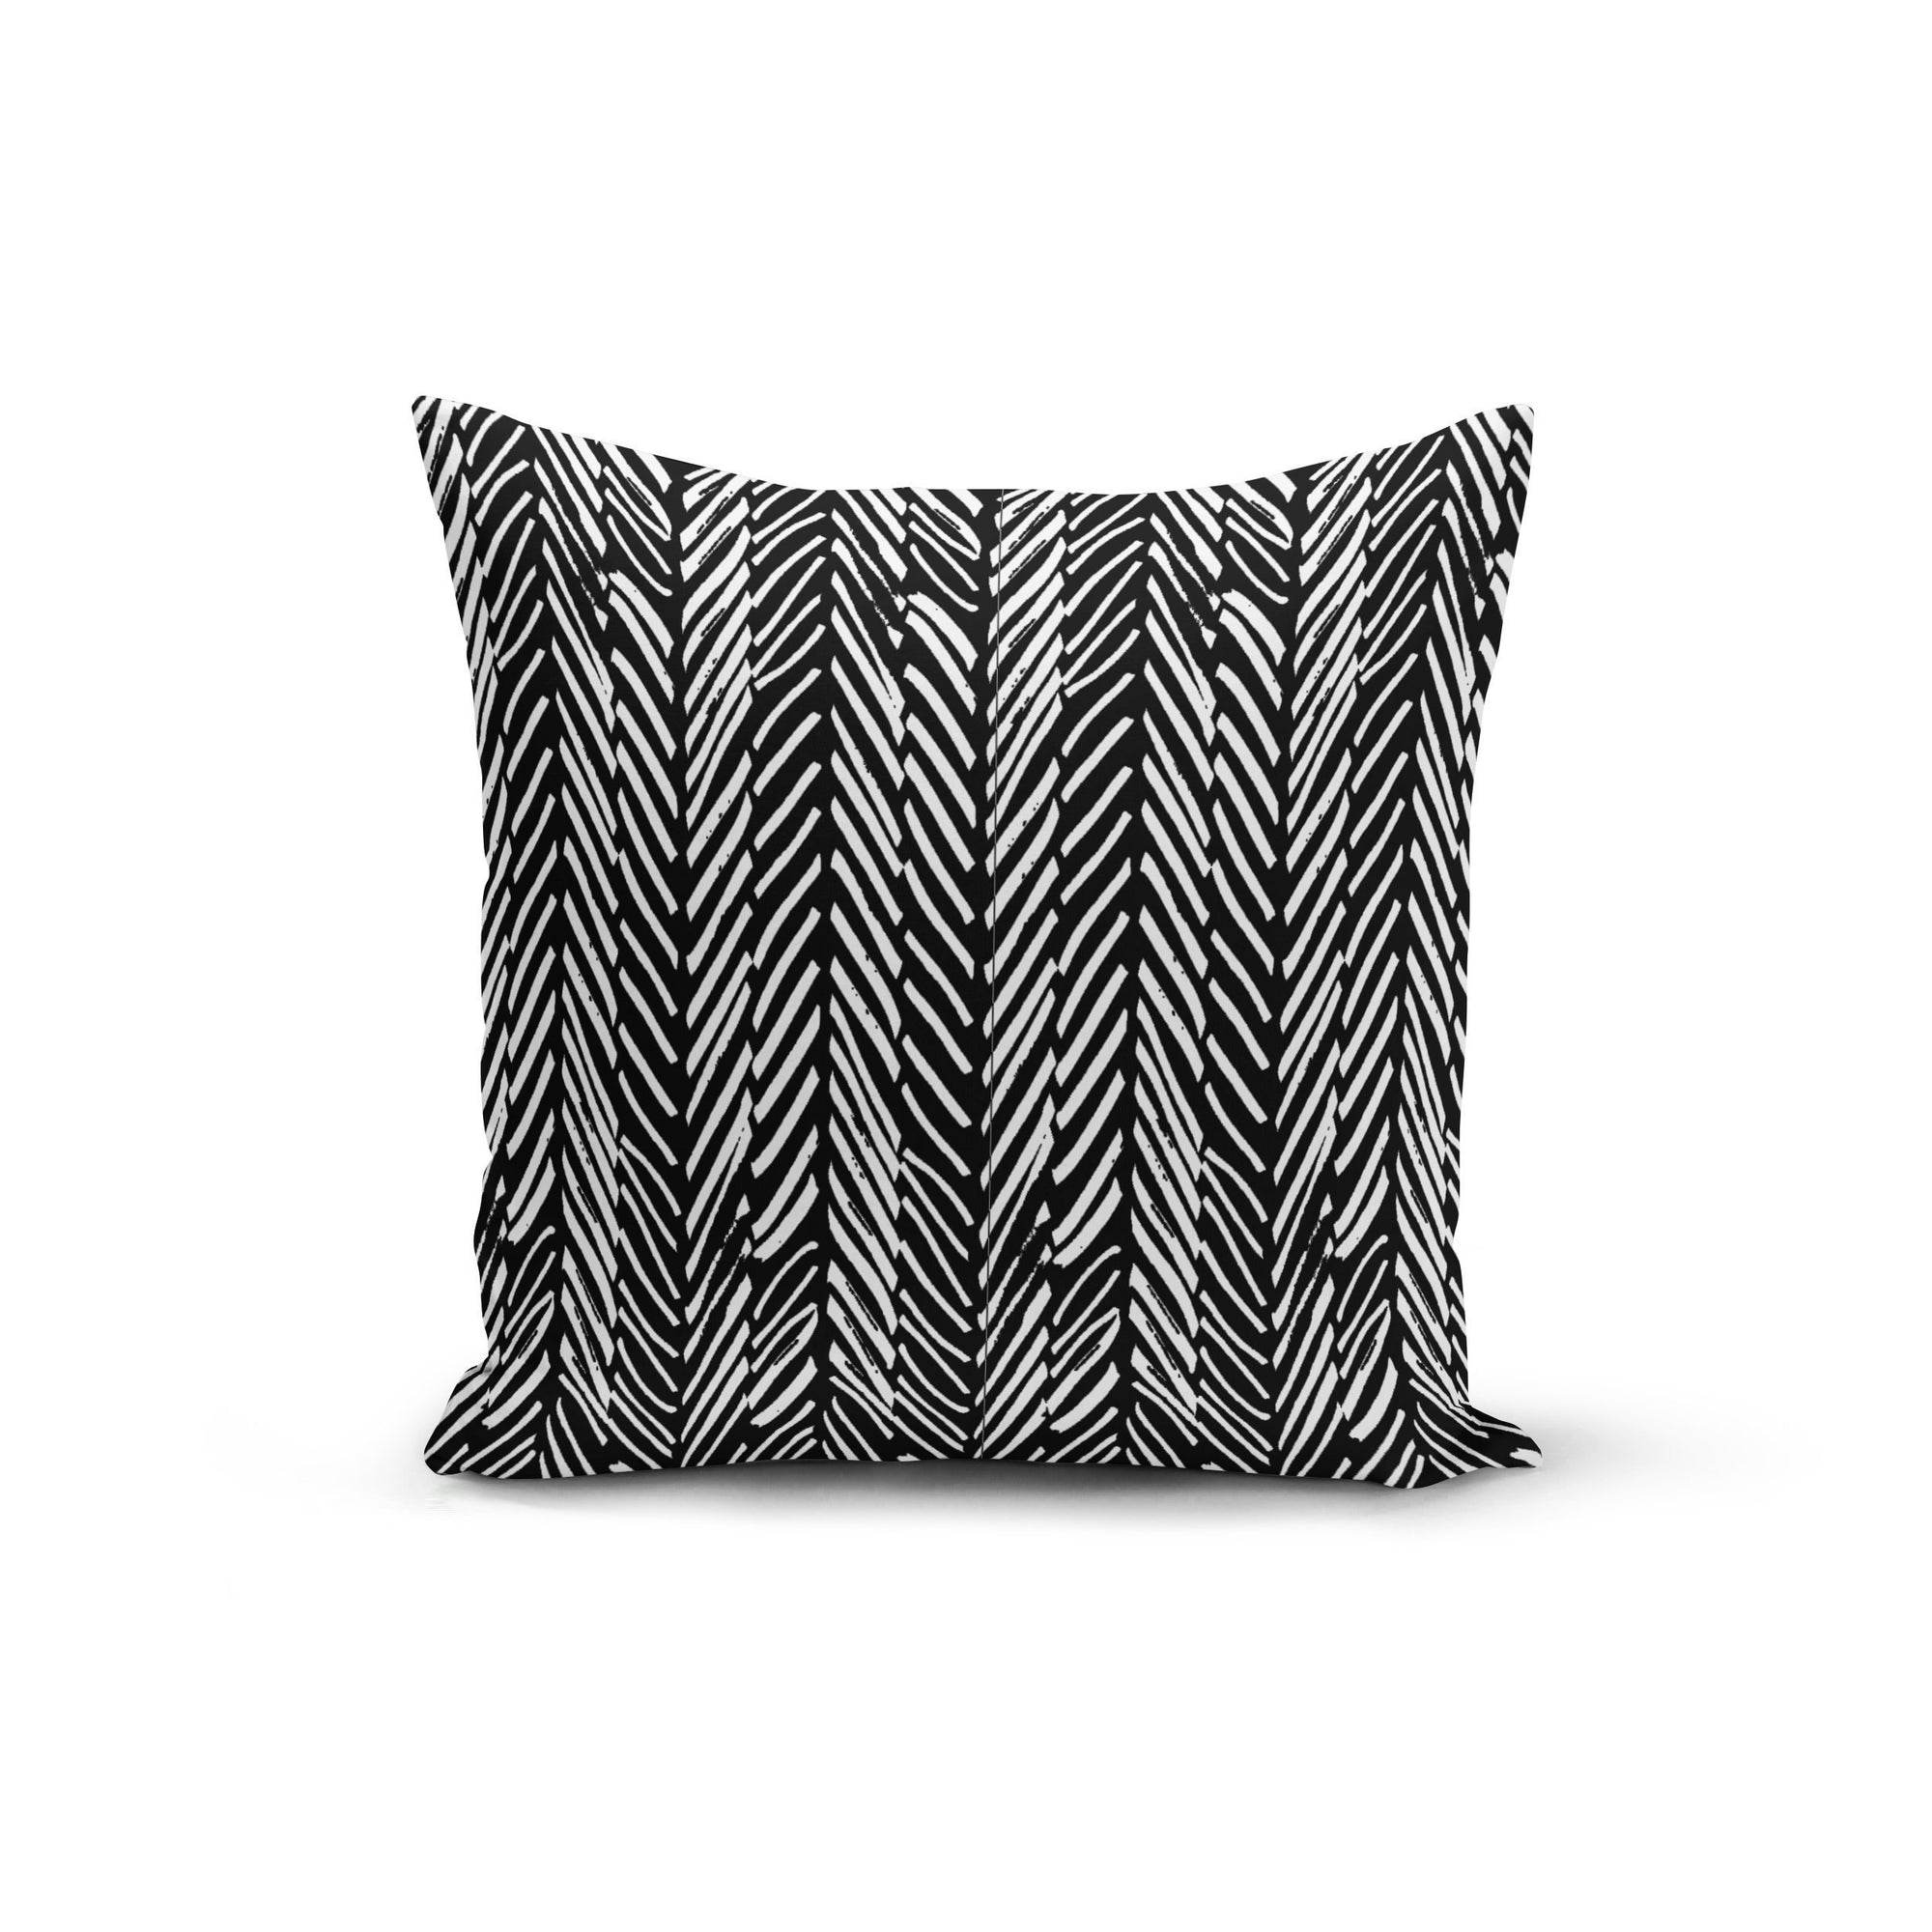 Abstract Lines Black Pillow Cover - Organic World Nation